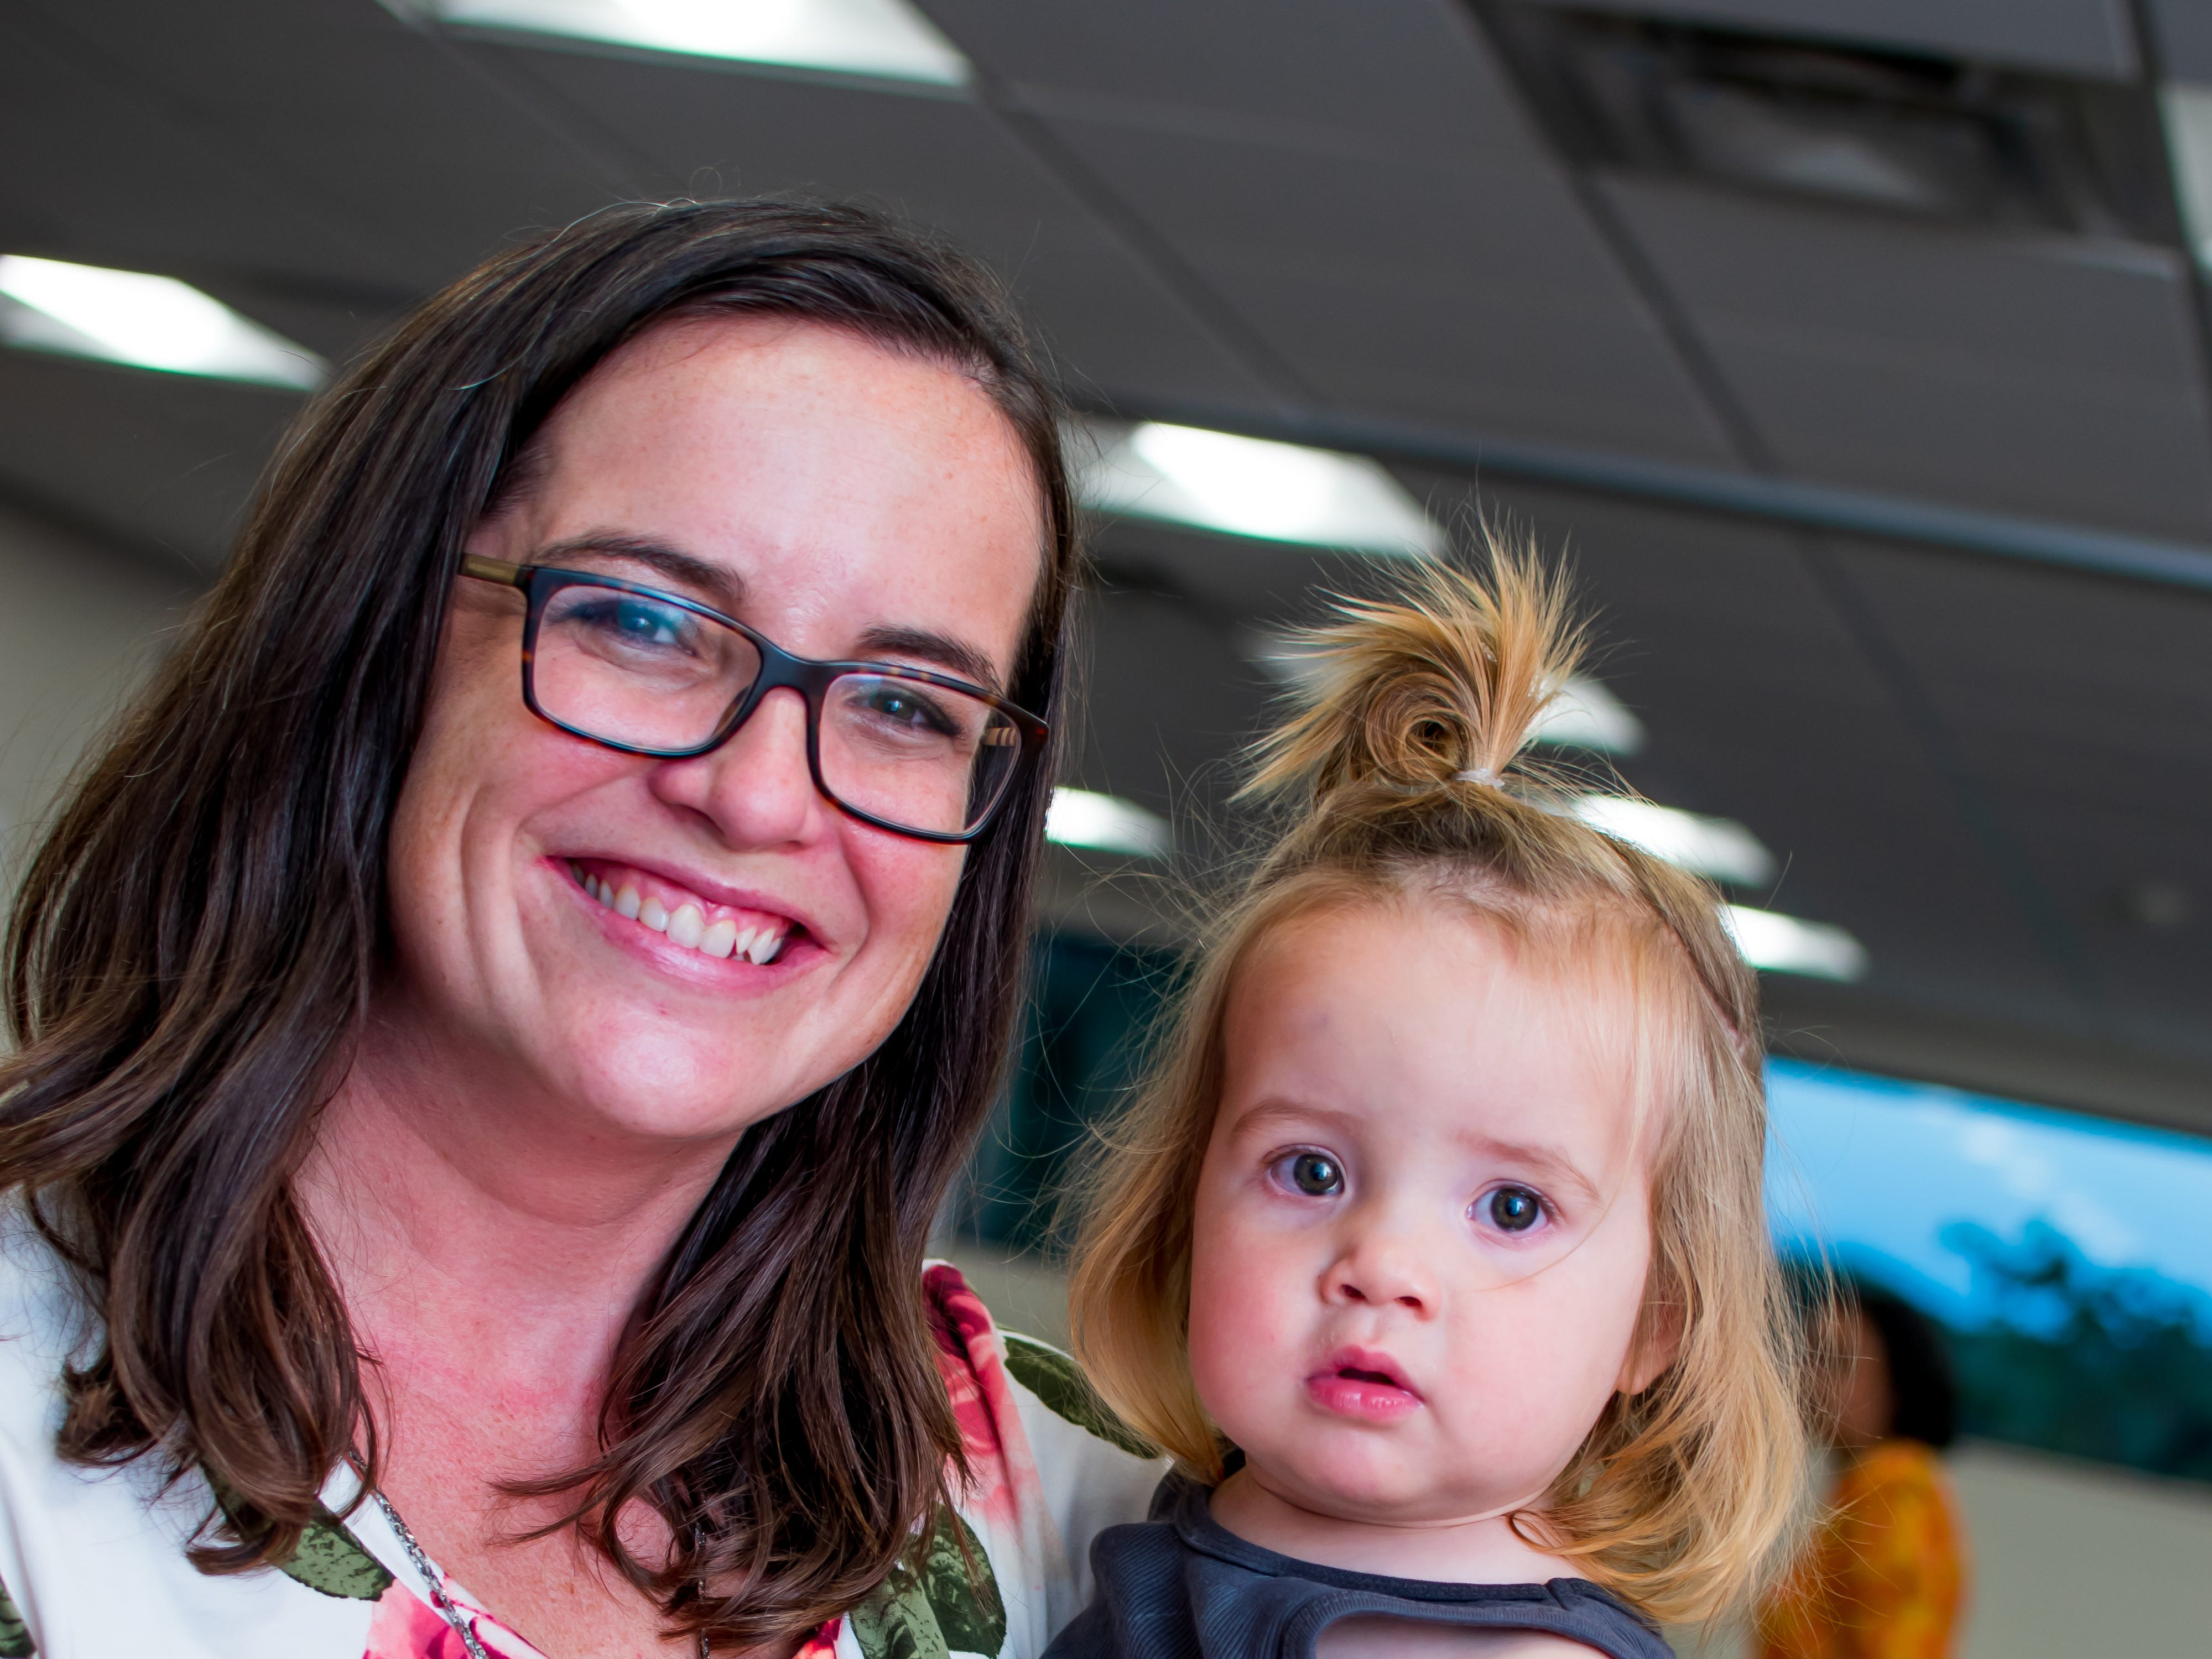 Kristi Harshbarger, and Margot Reis, 1, both of Waukee, are all smiles on  Thursday, September 20, 2018 at the Clive Public Library's Zoo Show and Tell in Clive.